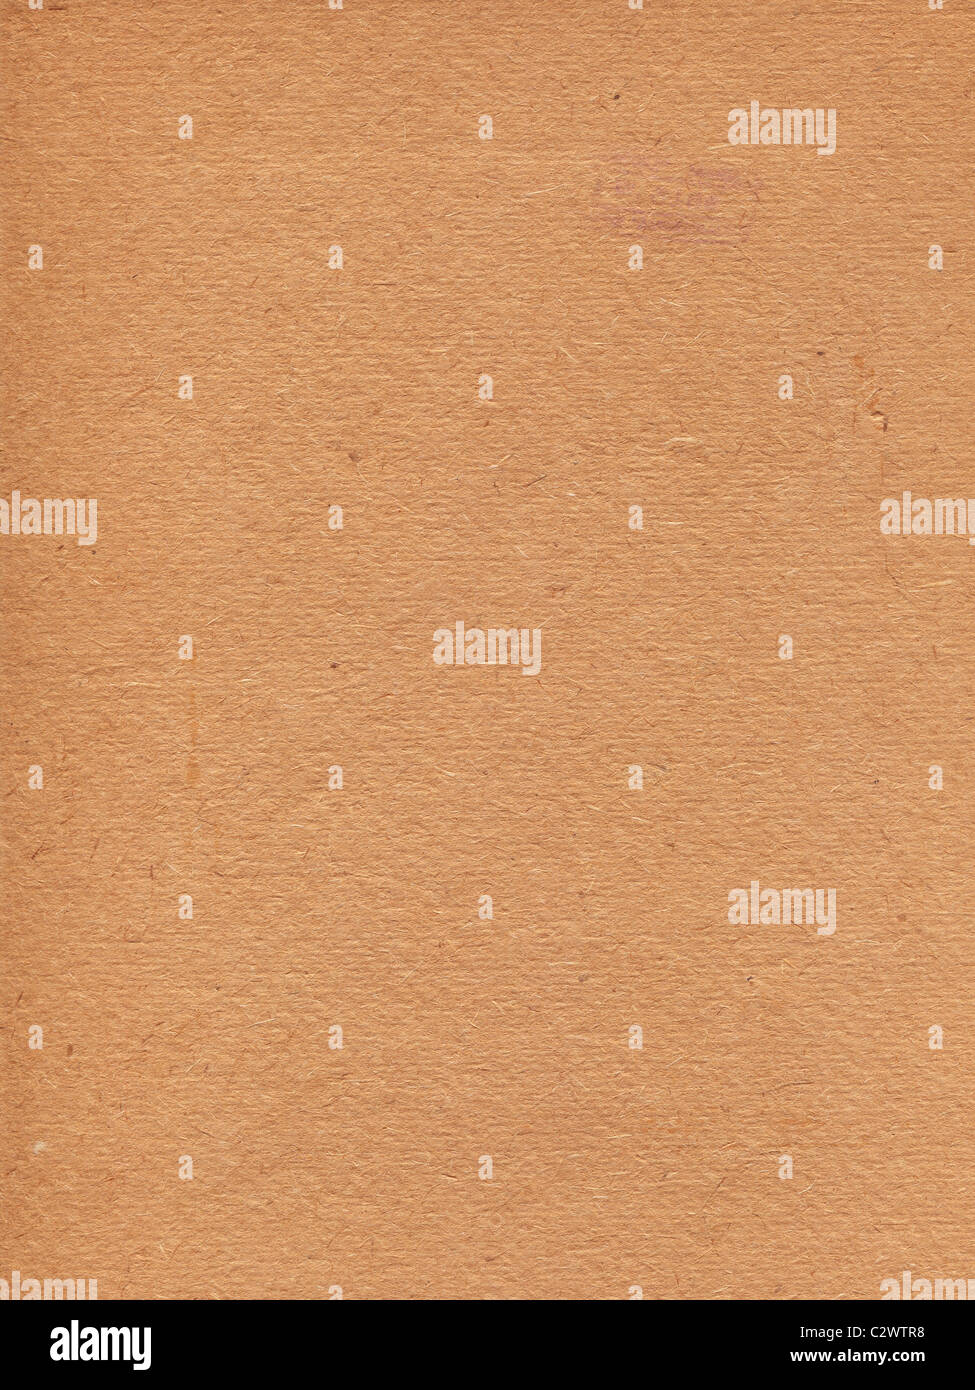 old dirty paper surface texture - Stock Image